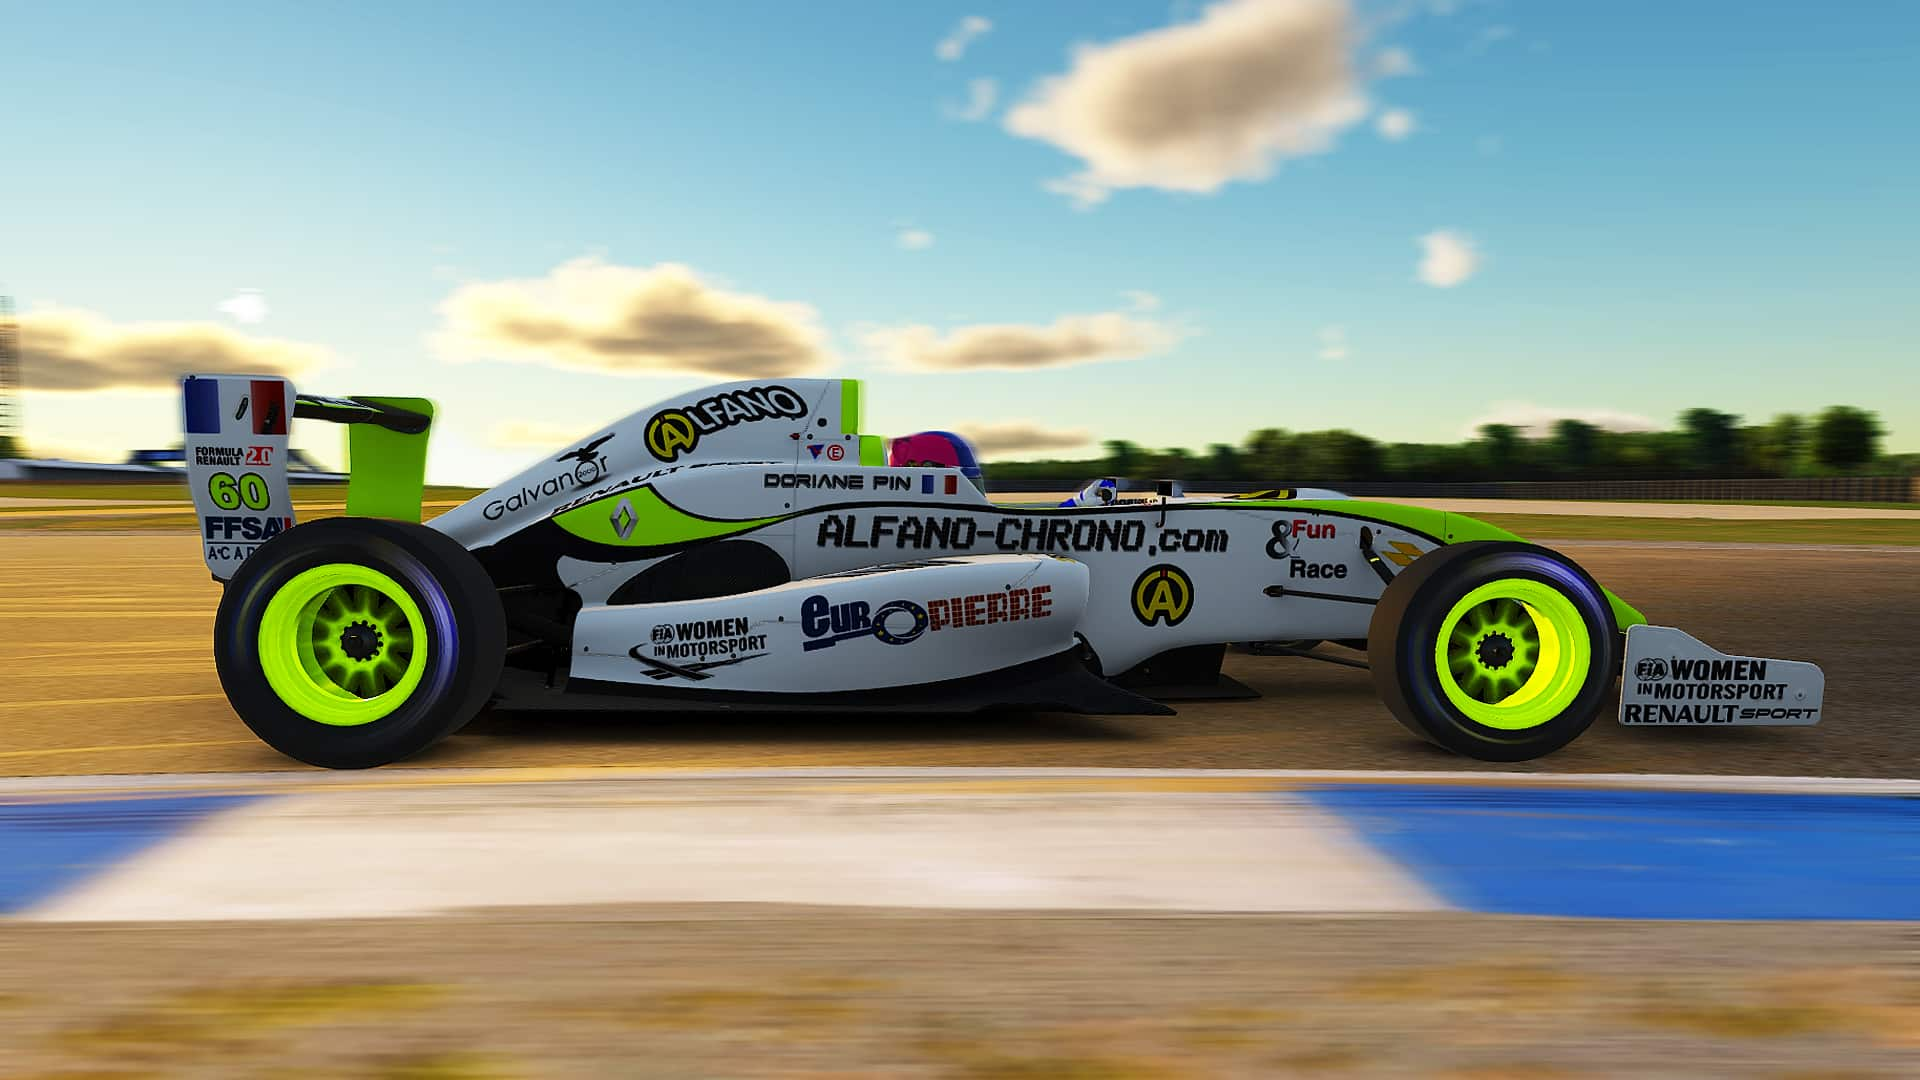 Doriane Pin drives her Formule Renault 2.0 on iRacing.